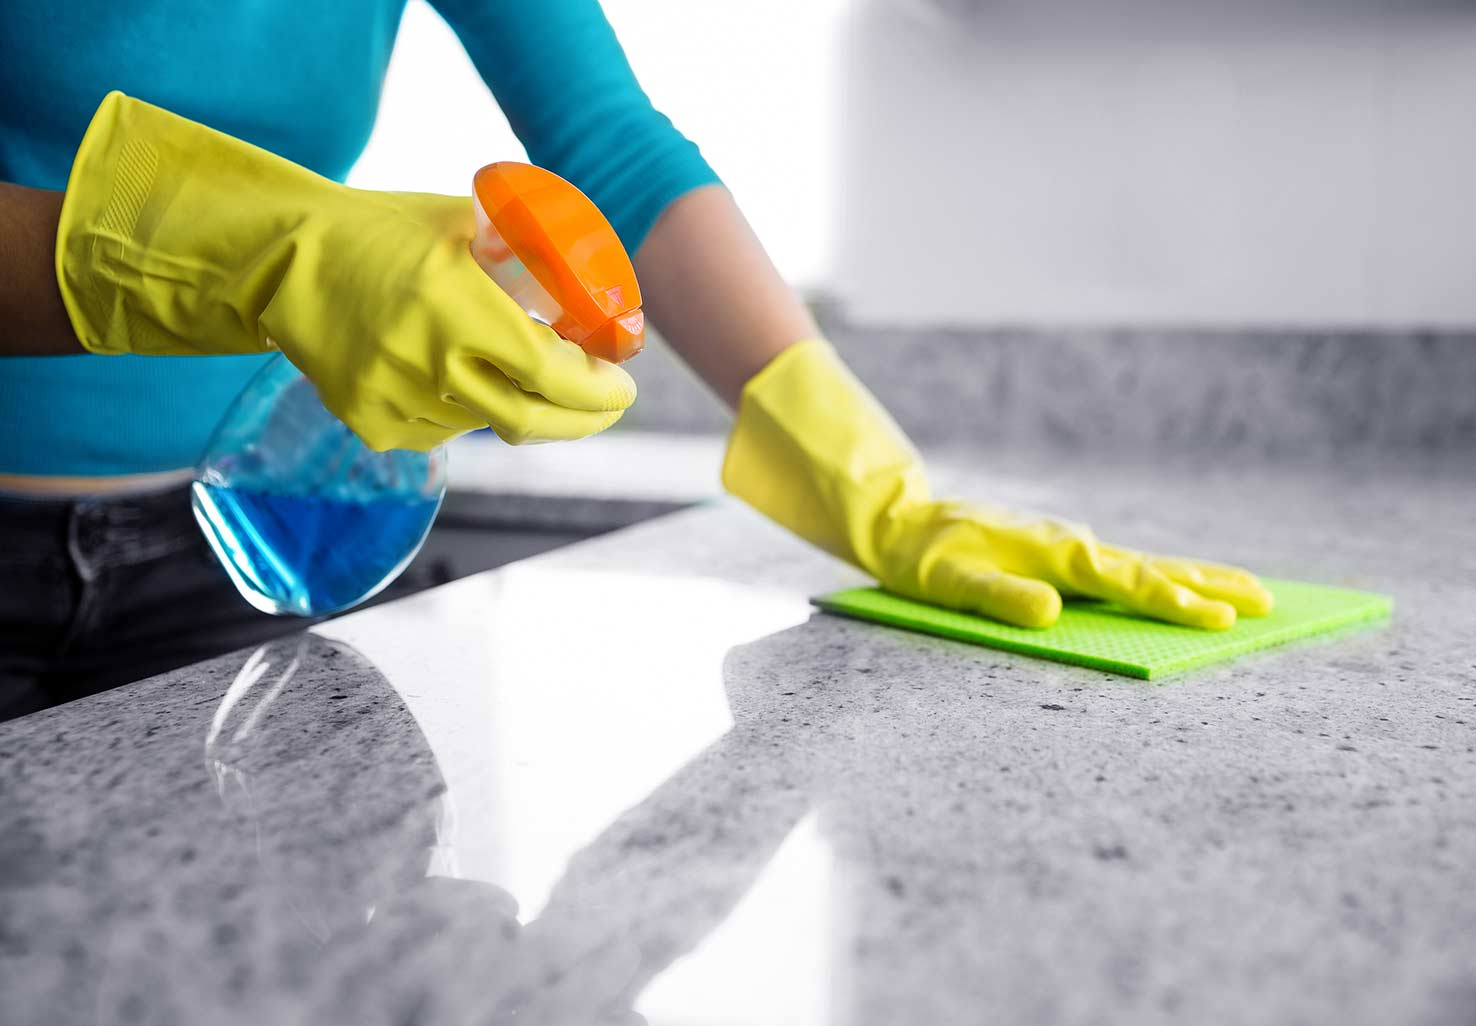 Woman with Gloves Cleaning Countertop